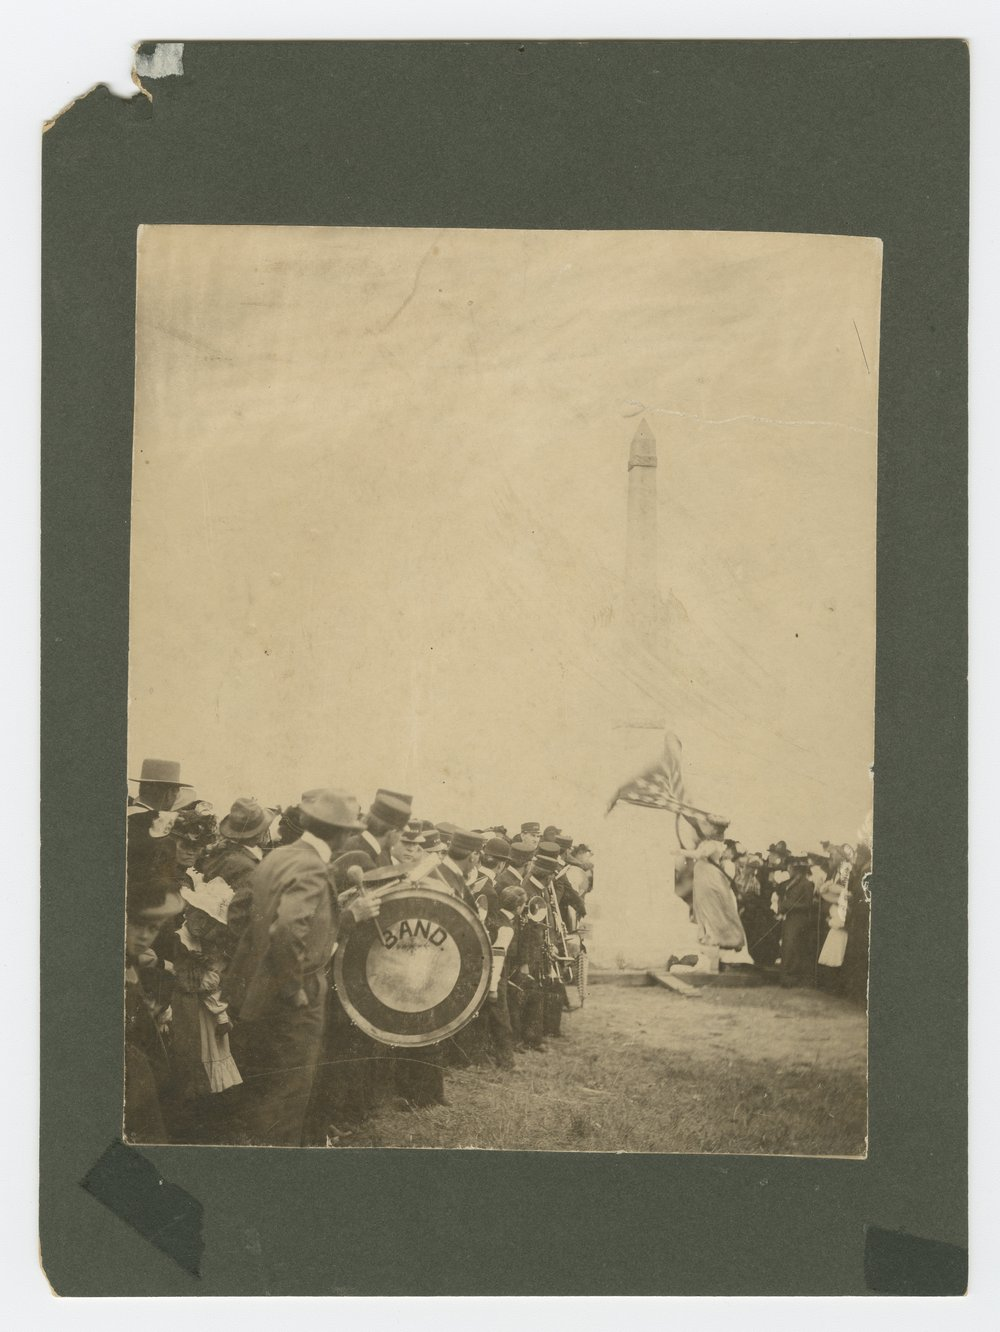 Unveiling the Pike monument at Pawnee Village, Republic County, Kansas - 5